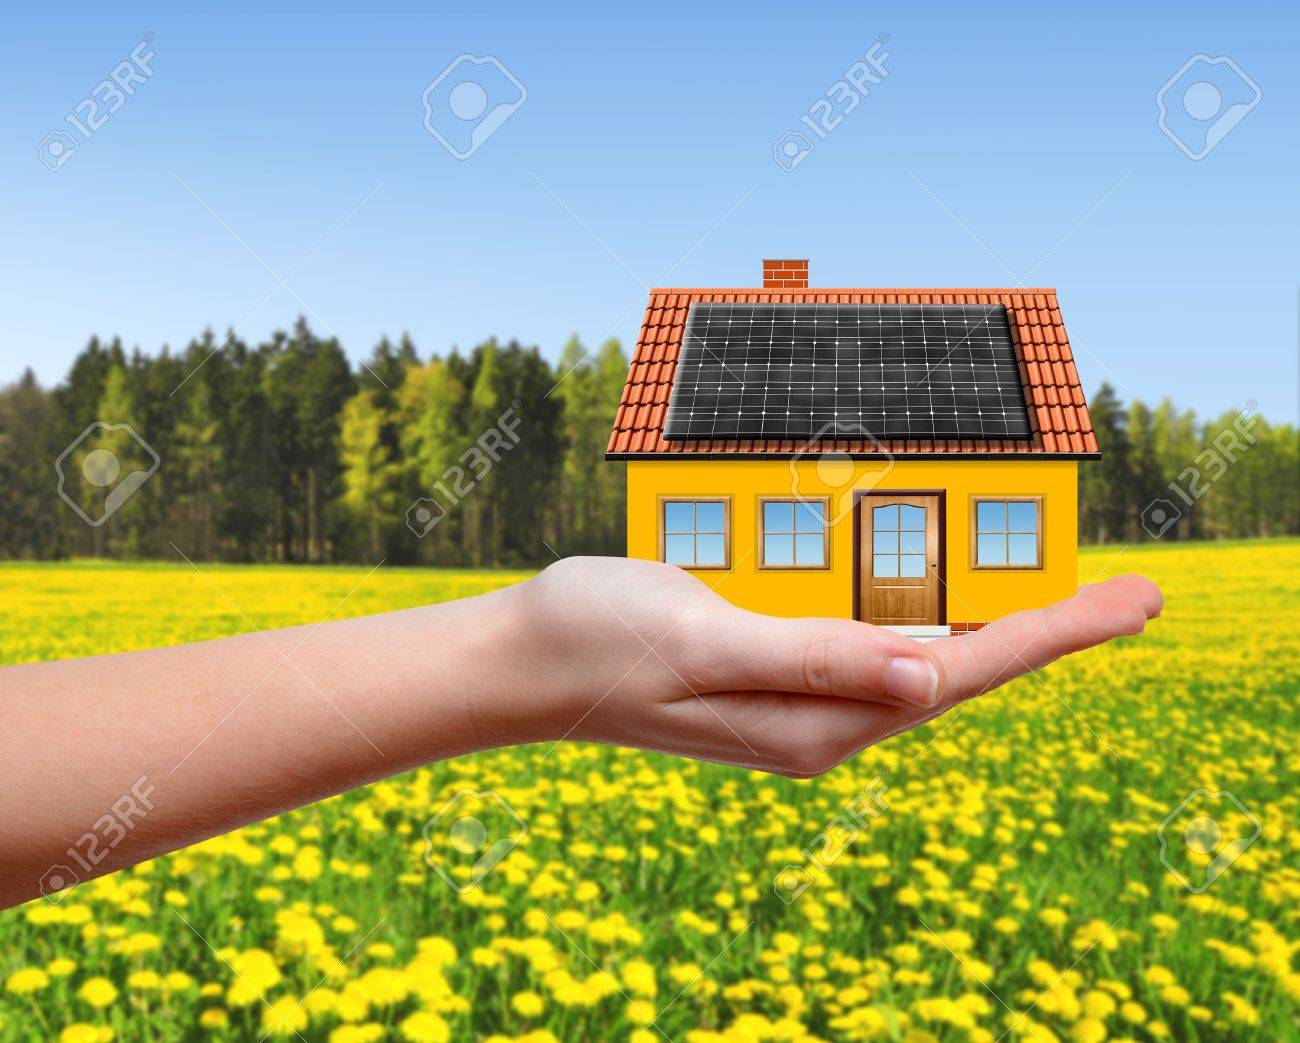 The house in hands Stock Photo - 19789085